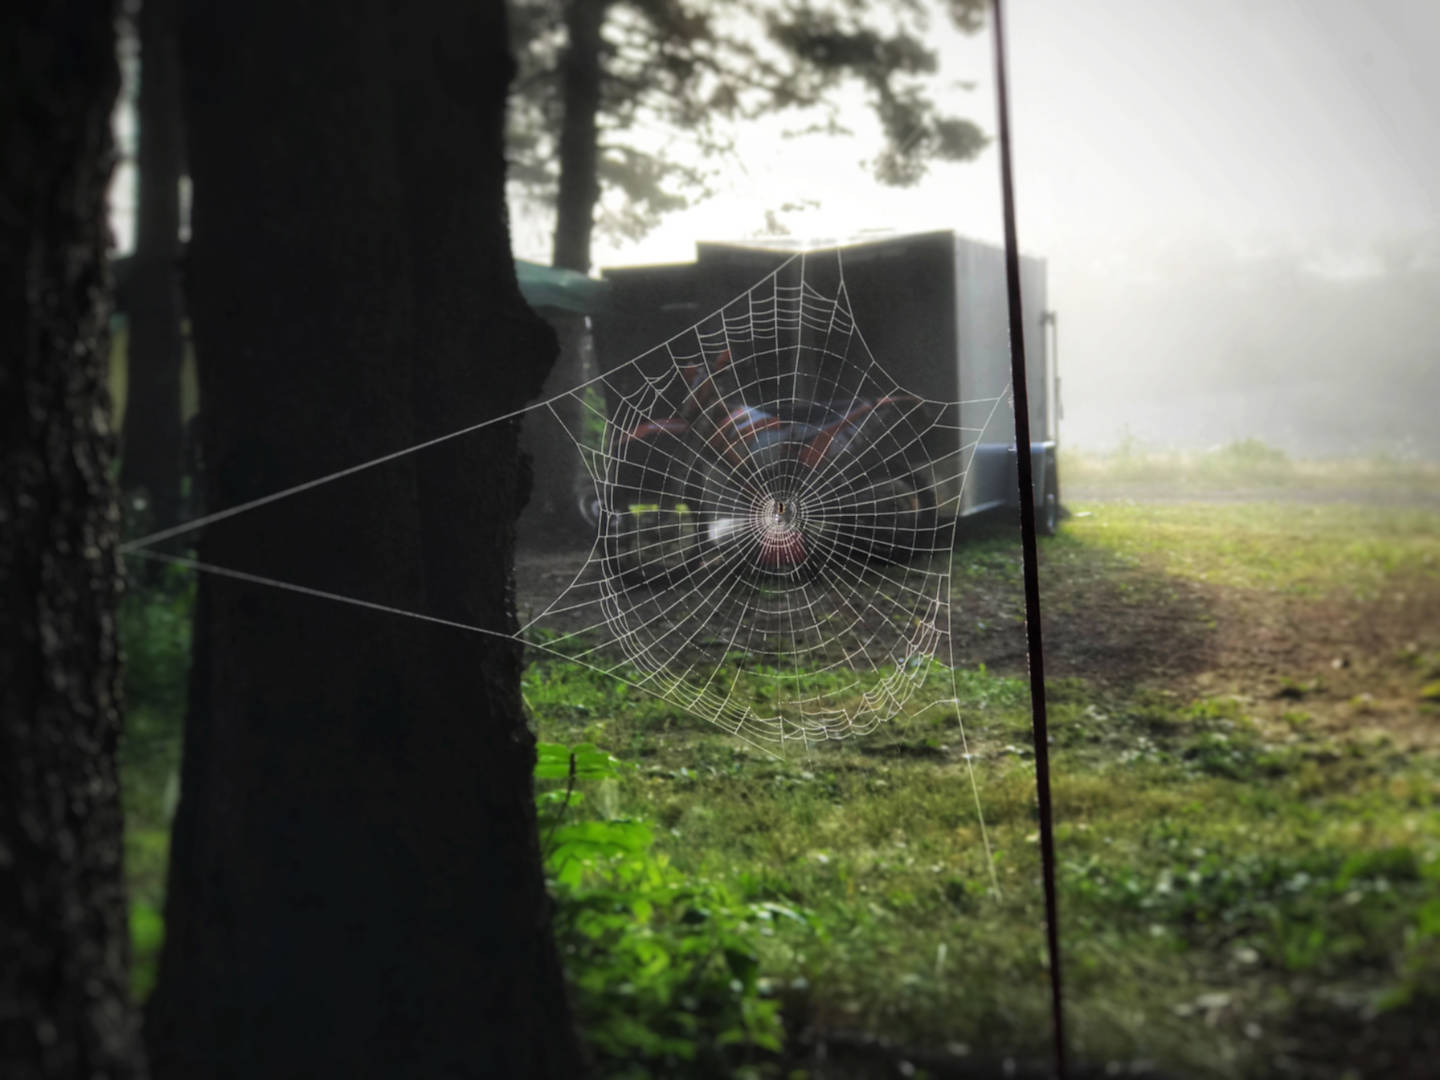 photo of a spider's web covered in morning dew